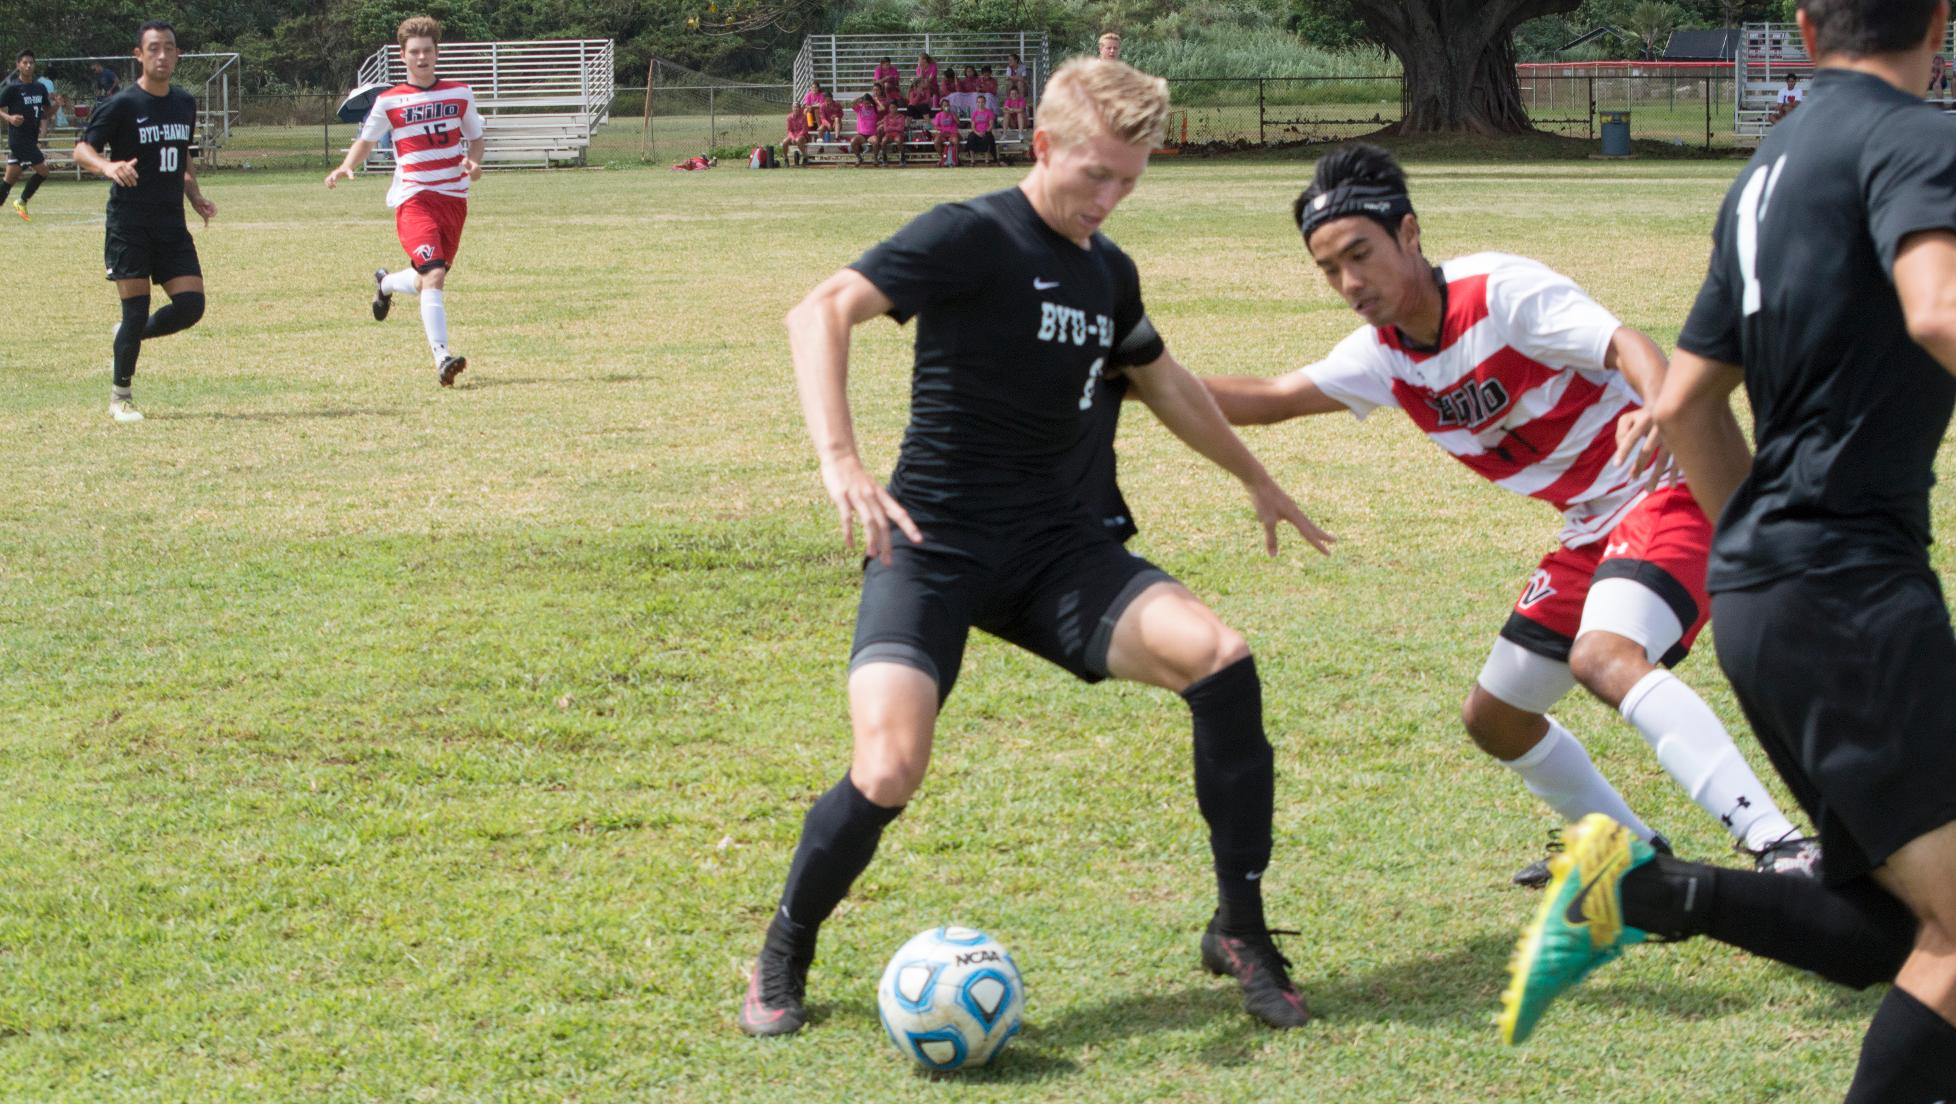 Wittmann's shutout propels Seasiders to victory